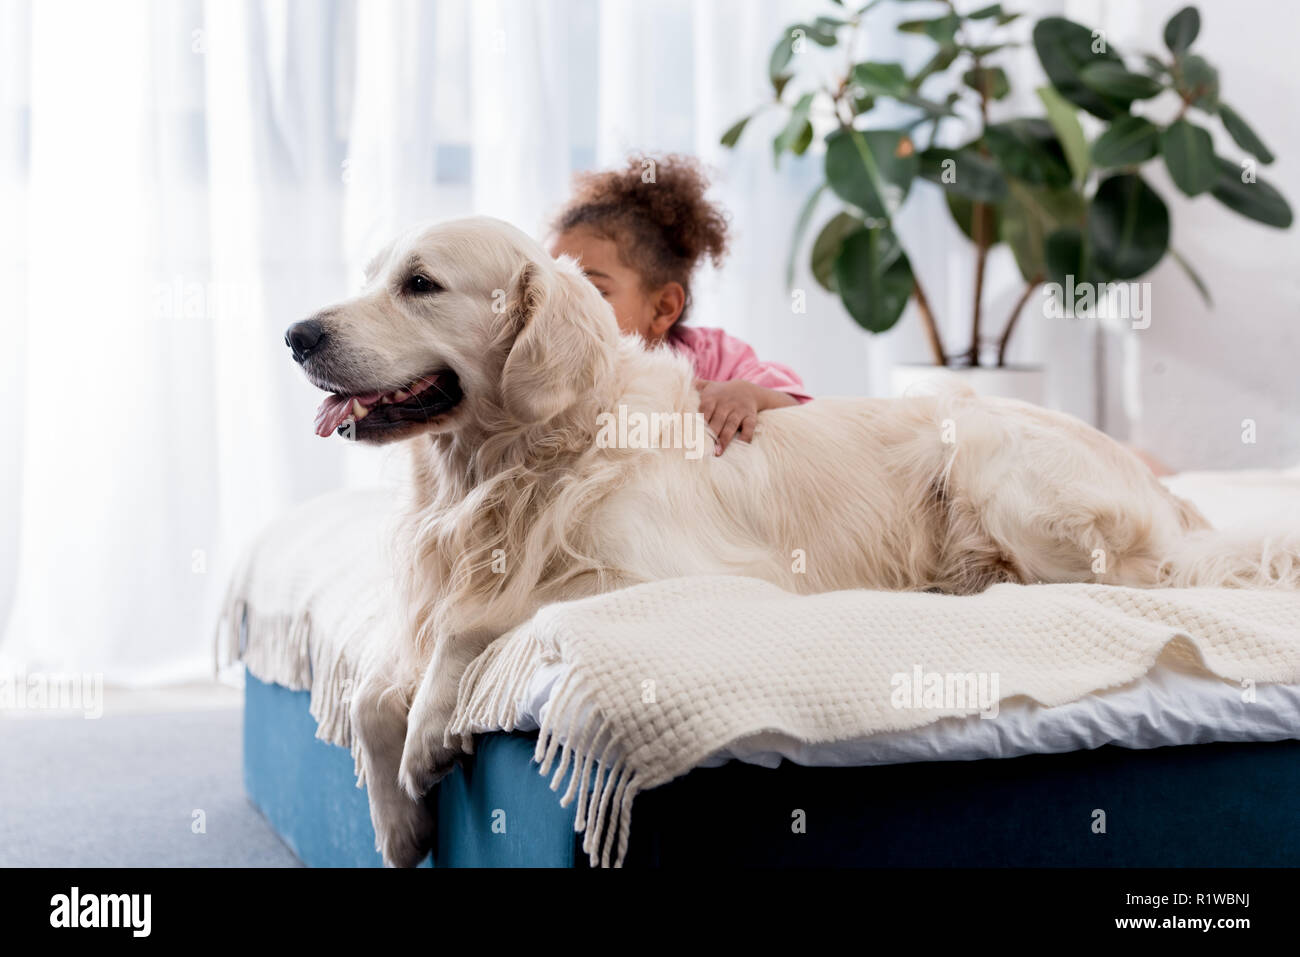 Adorable african american kid sitting on the bed behind her golden retriever - Stock Image